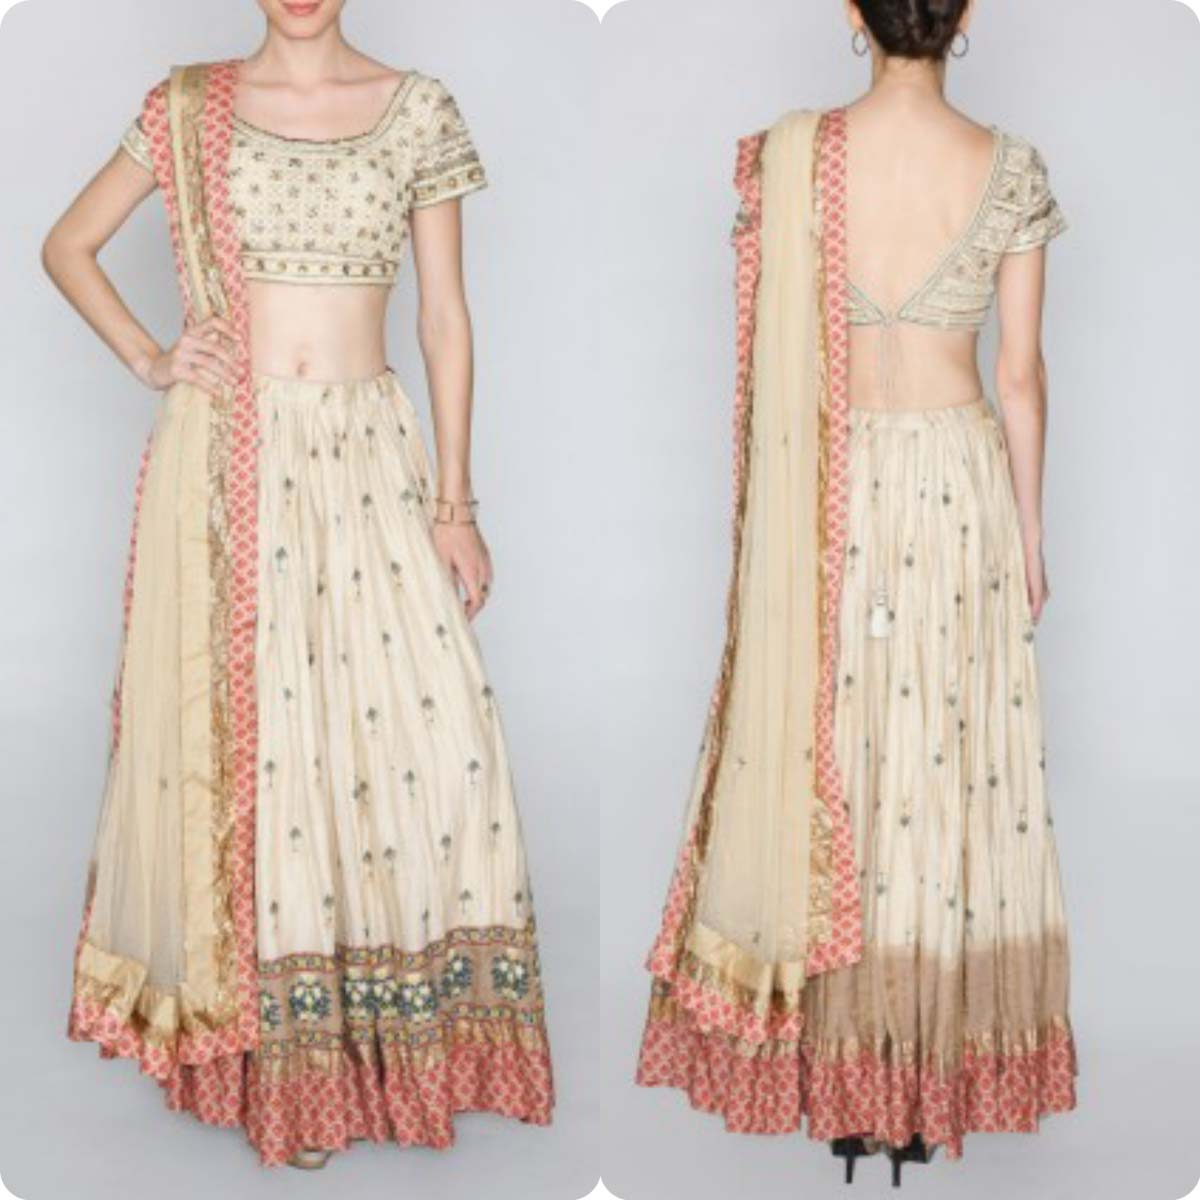 offwhite-embroidered-chanderi-lehenga-choli-and-dupatta